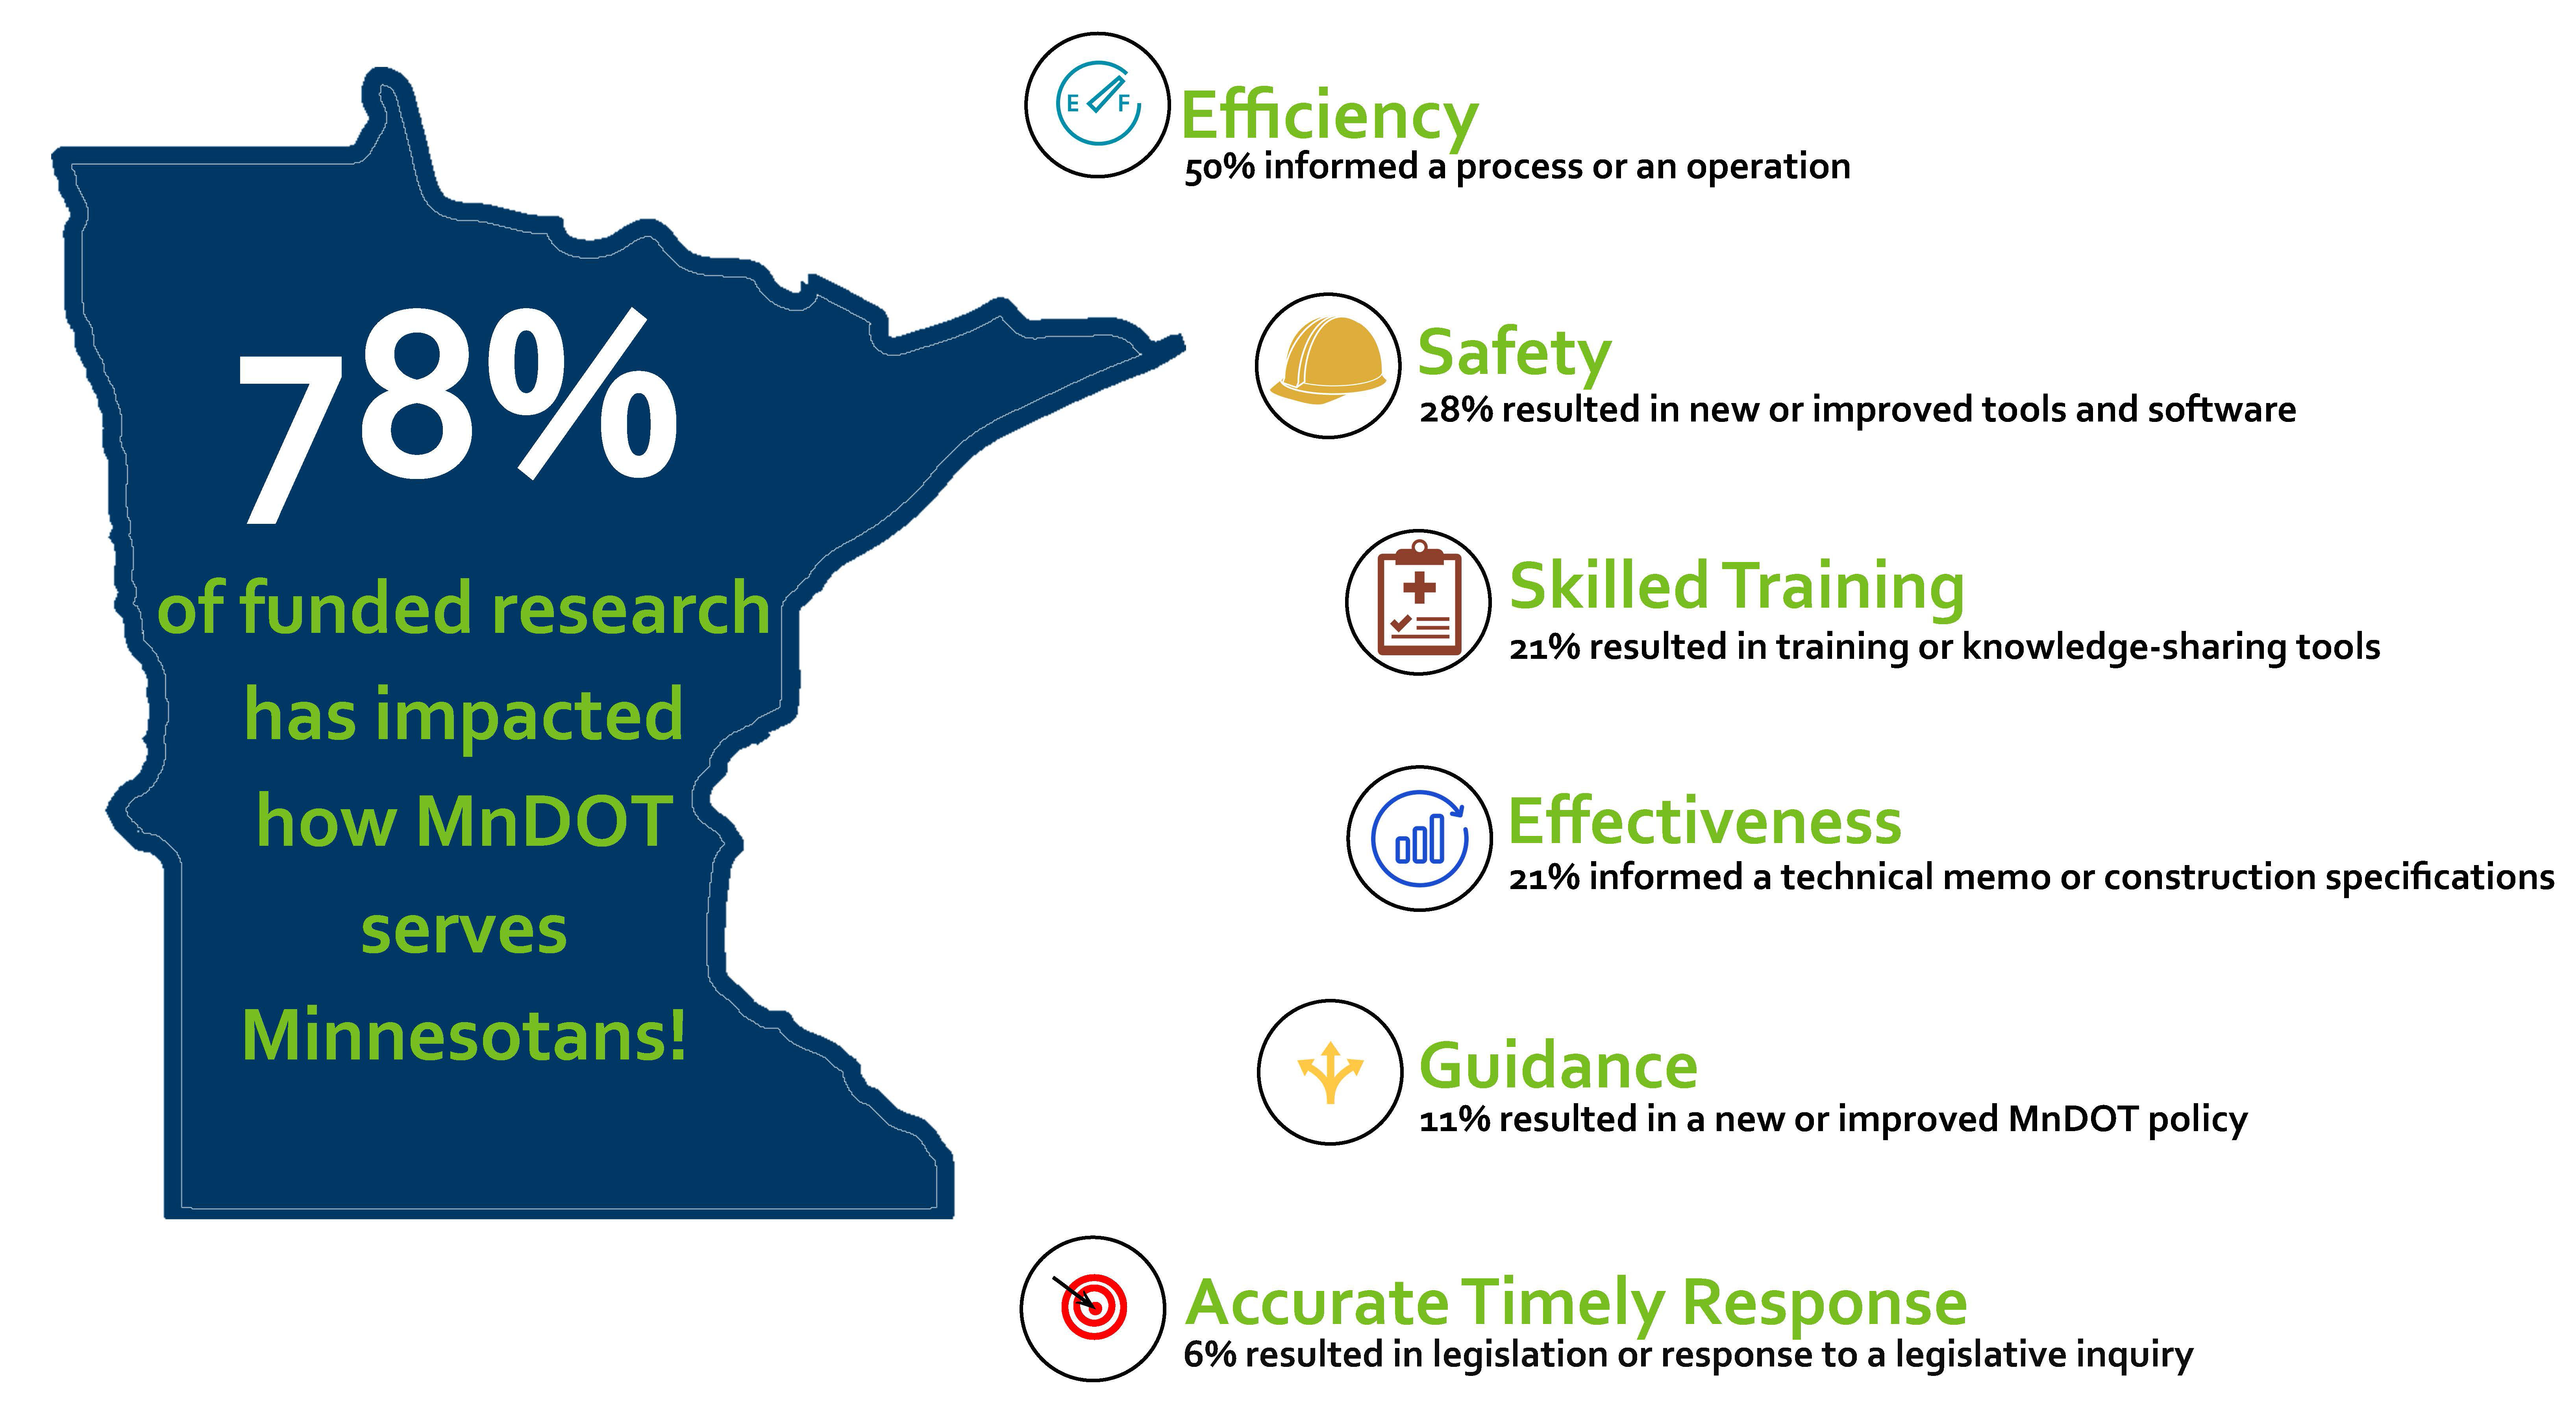 Office of Research & Innovation Research Outcomes. 78% of funded research has impacted how MnDOT serves Minnesotans. 28% resulted in new or improved tools and softward. 22% resultd in training or knowledge-sharing tools. 21% informed a technical memo or construction specifications. 11% resulted in a new or improved MnDOT policy. 6% resulted in legisltation or response to a legislative inquiry.